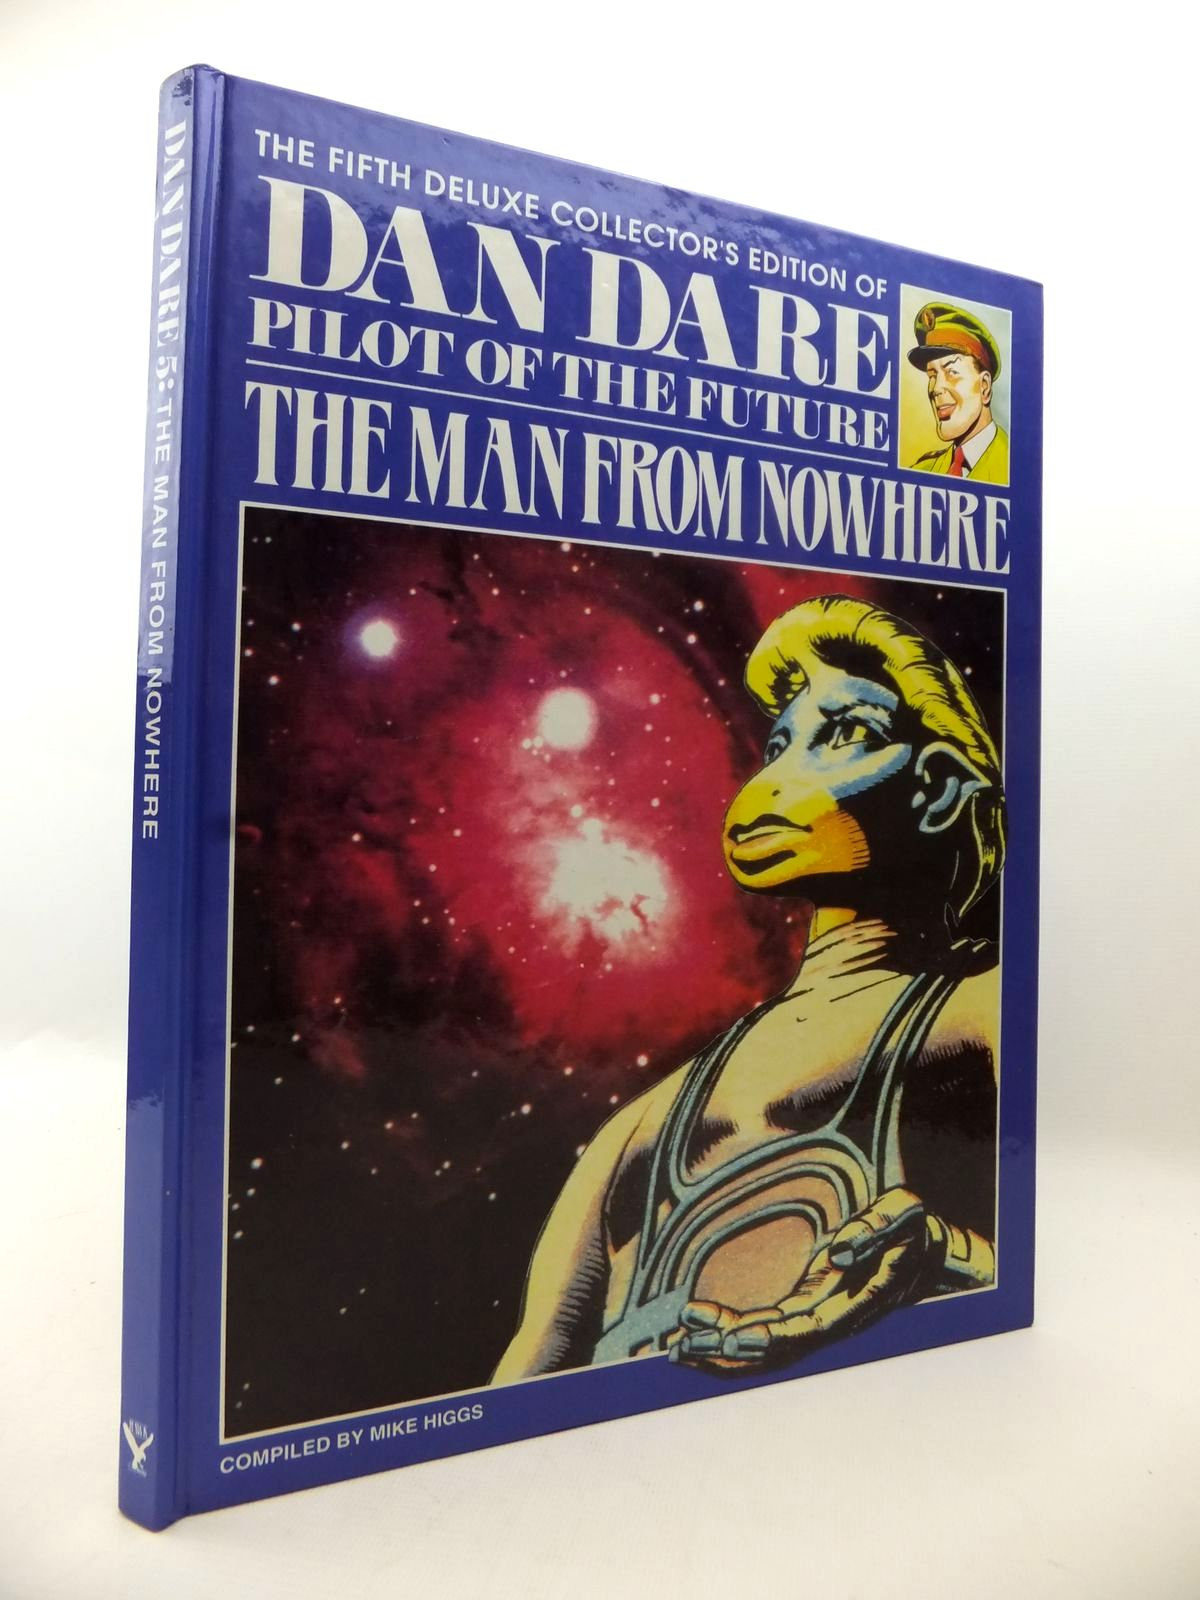 Photo of THE FIFTH DELUXE COLLECTOR'S EDITION OF DAN DARE PILOT OF THE FUTURE THE MAN FROM NOWHERE written by Higgs, Mike published by Hawk Books (STOCK CODE: 1813309)  for sale by Stella & Rose's Books